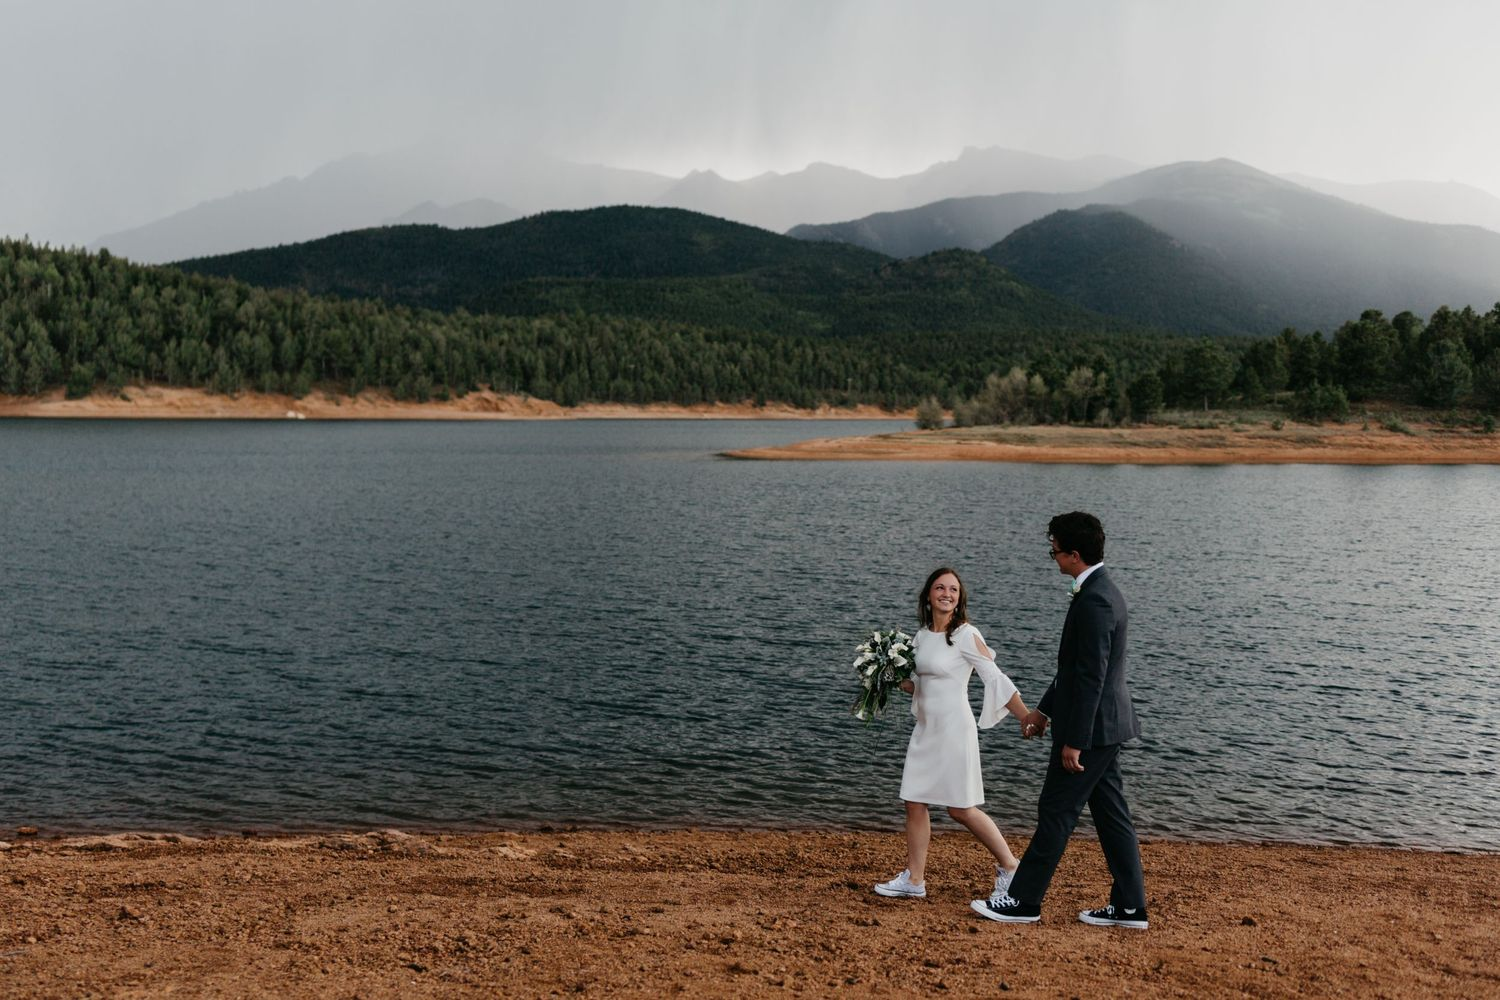 elope, wedding inspiration, colorado, wedding photographer, best of colorado weddings, beautiful wedding, simple, fun